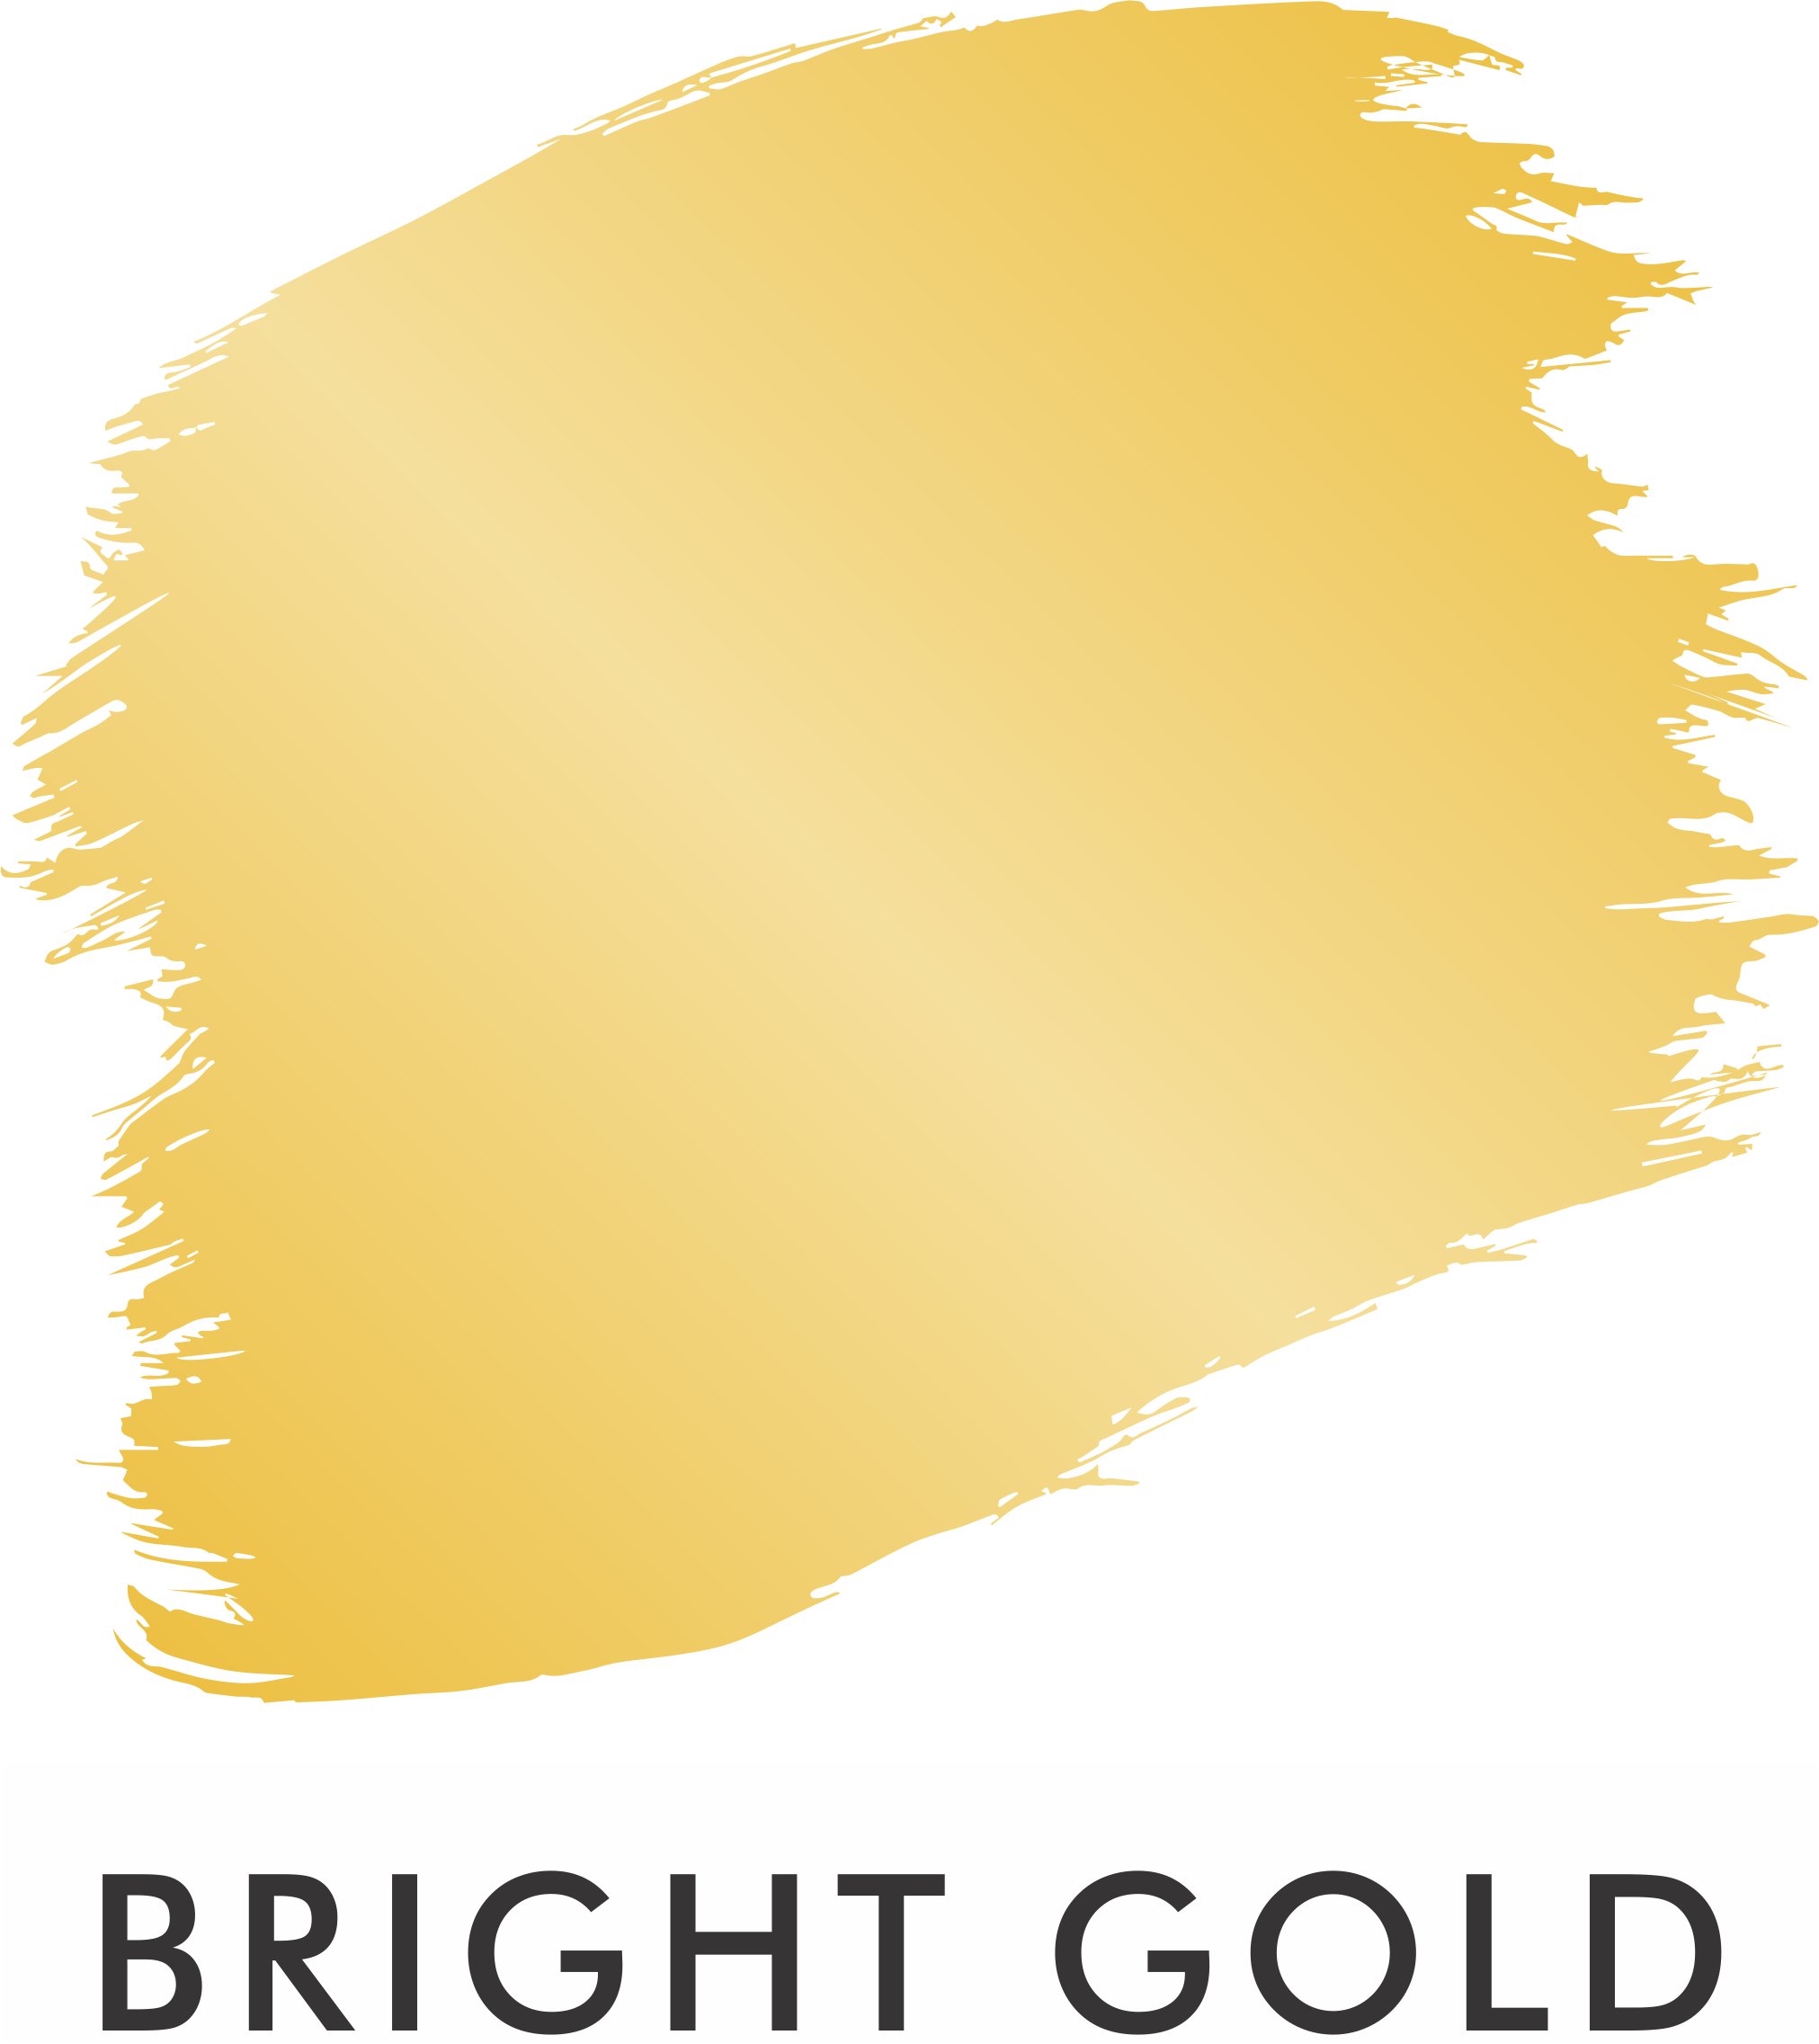 BRIGHT GOLD.png